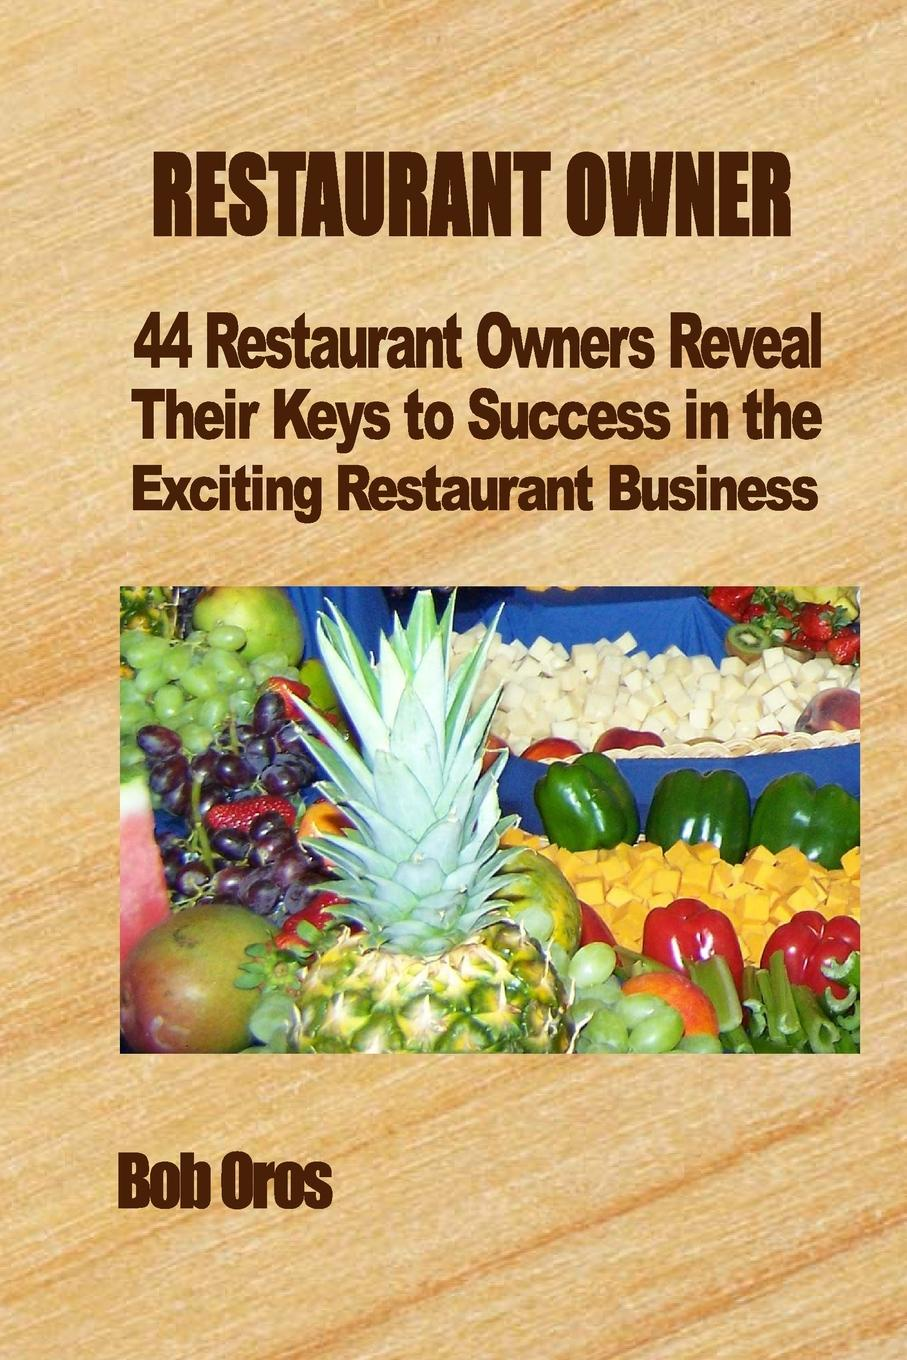 Bob Oros Restaurant Owner. 44 Restaurant Owners Reveal Their Keys to Success in the Exciting Restaurant Business saul miller l why teams win 9 keys to success in business sport and beyond isbn 9780470160725